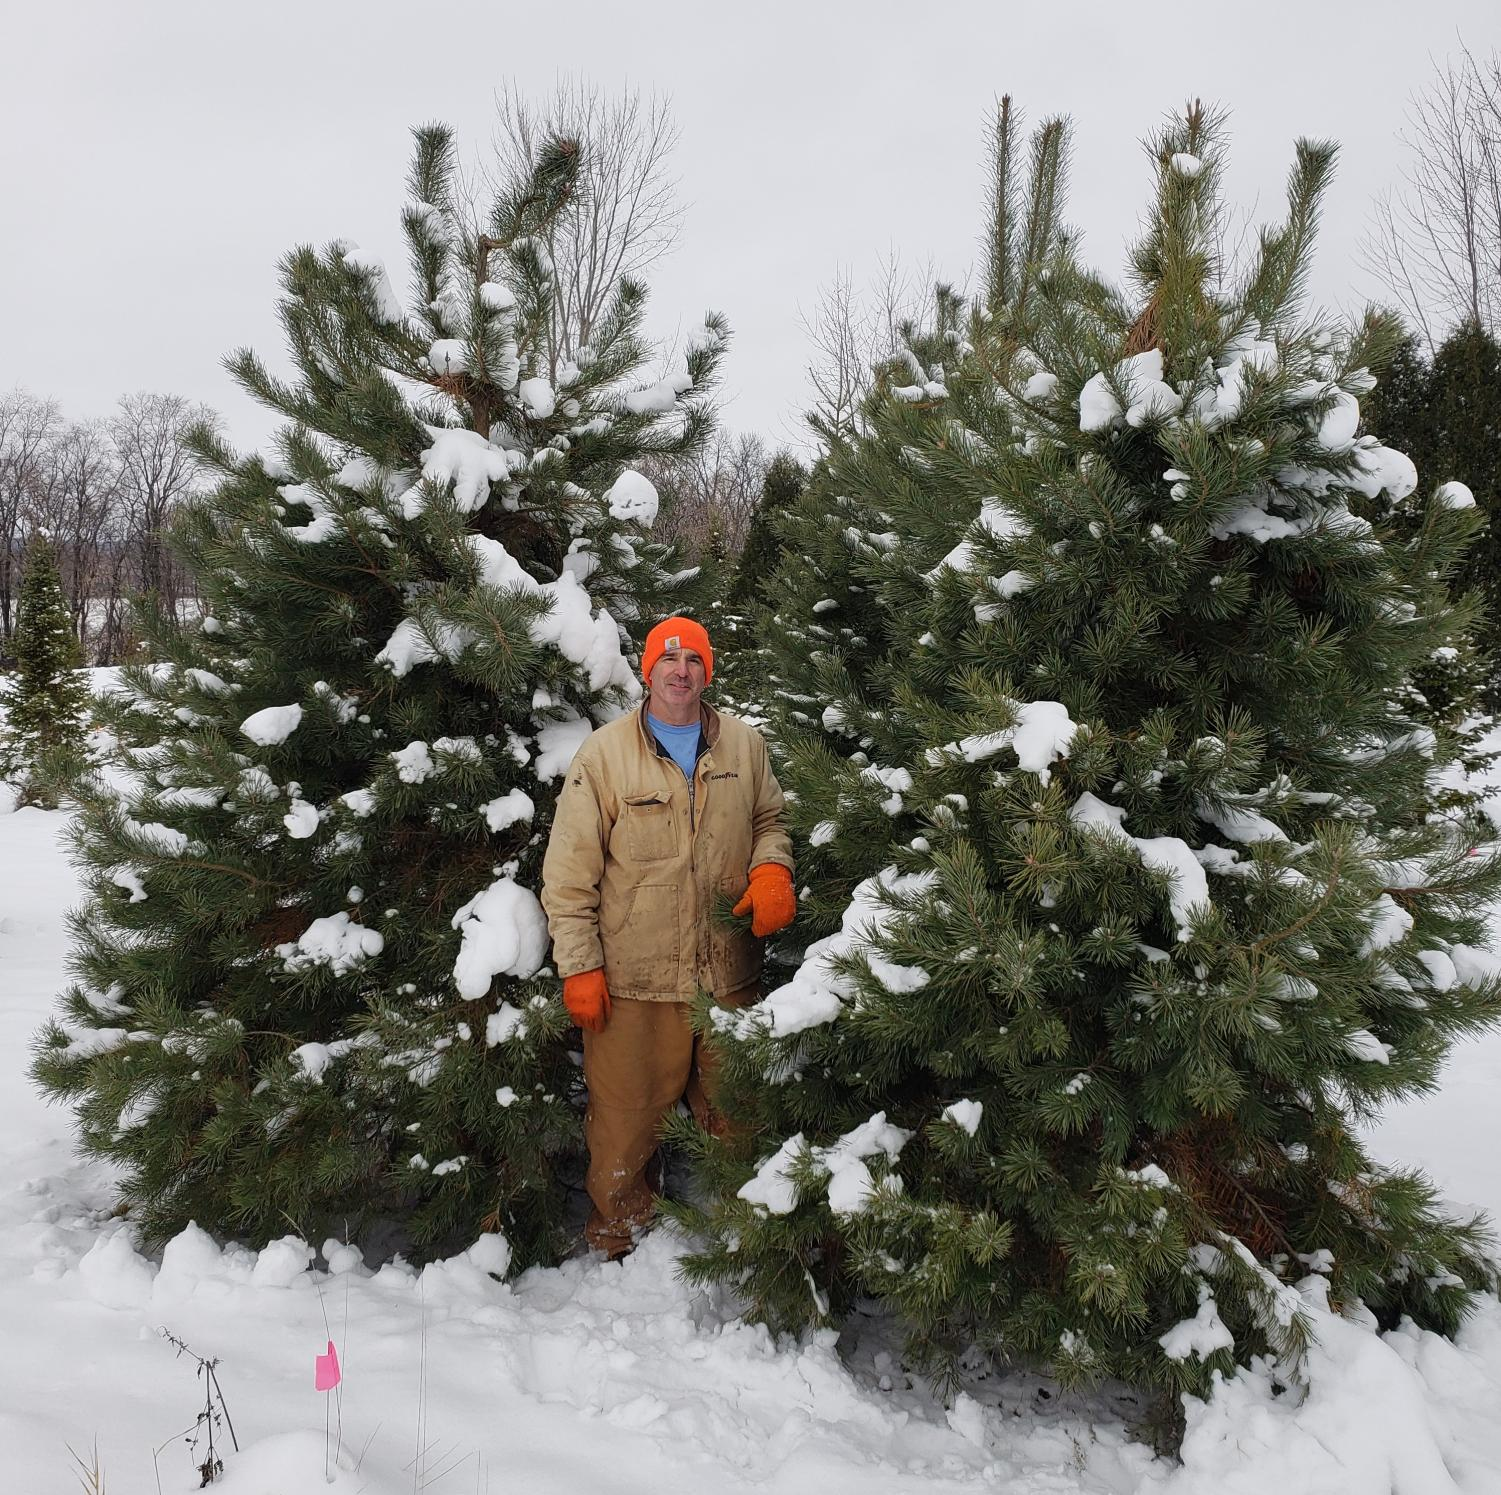 Mr. Tikalsky shows off some of his best trees.